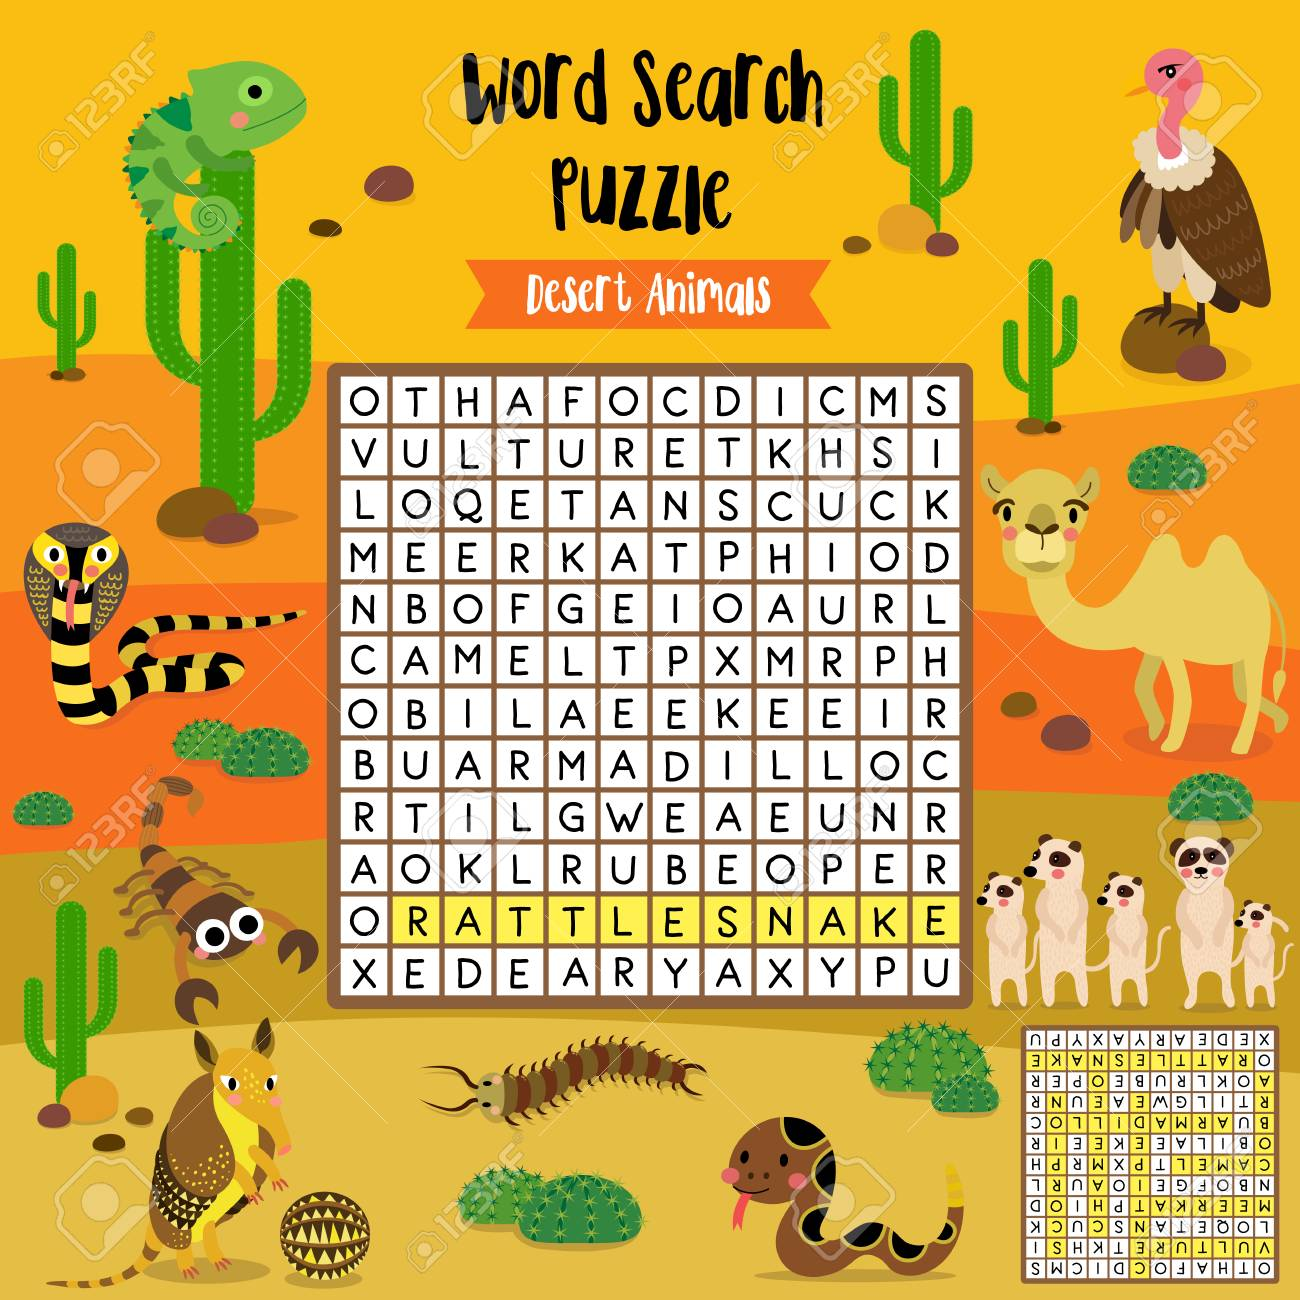 words search puzzle game of desert animals for preschool kids activity worksheet layout in a4 colorf